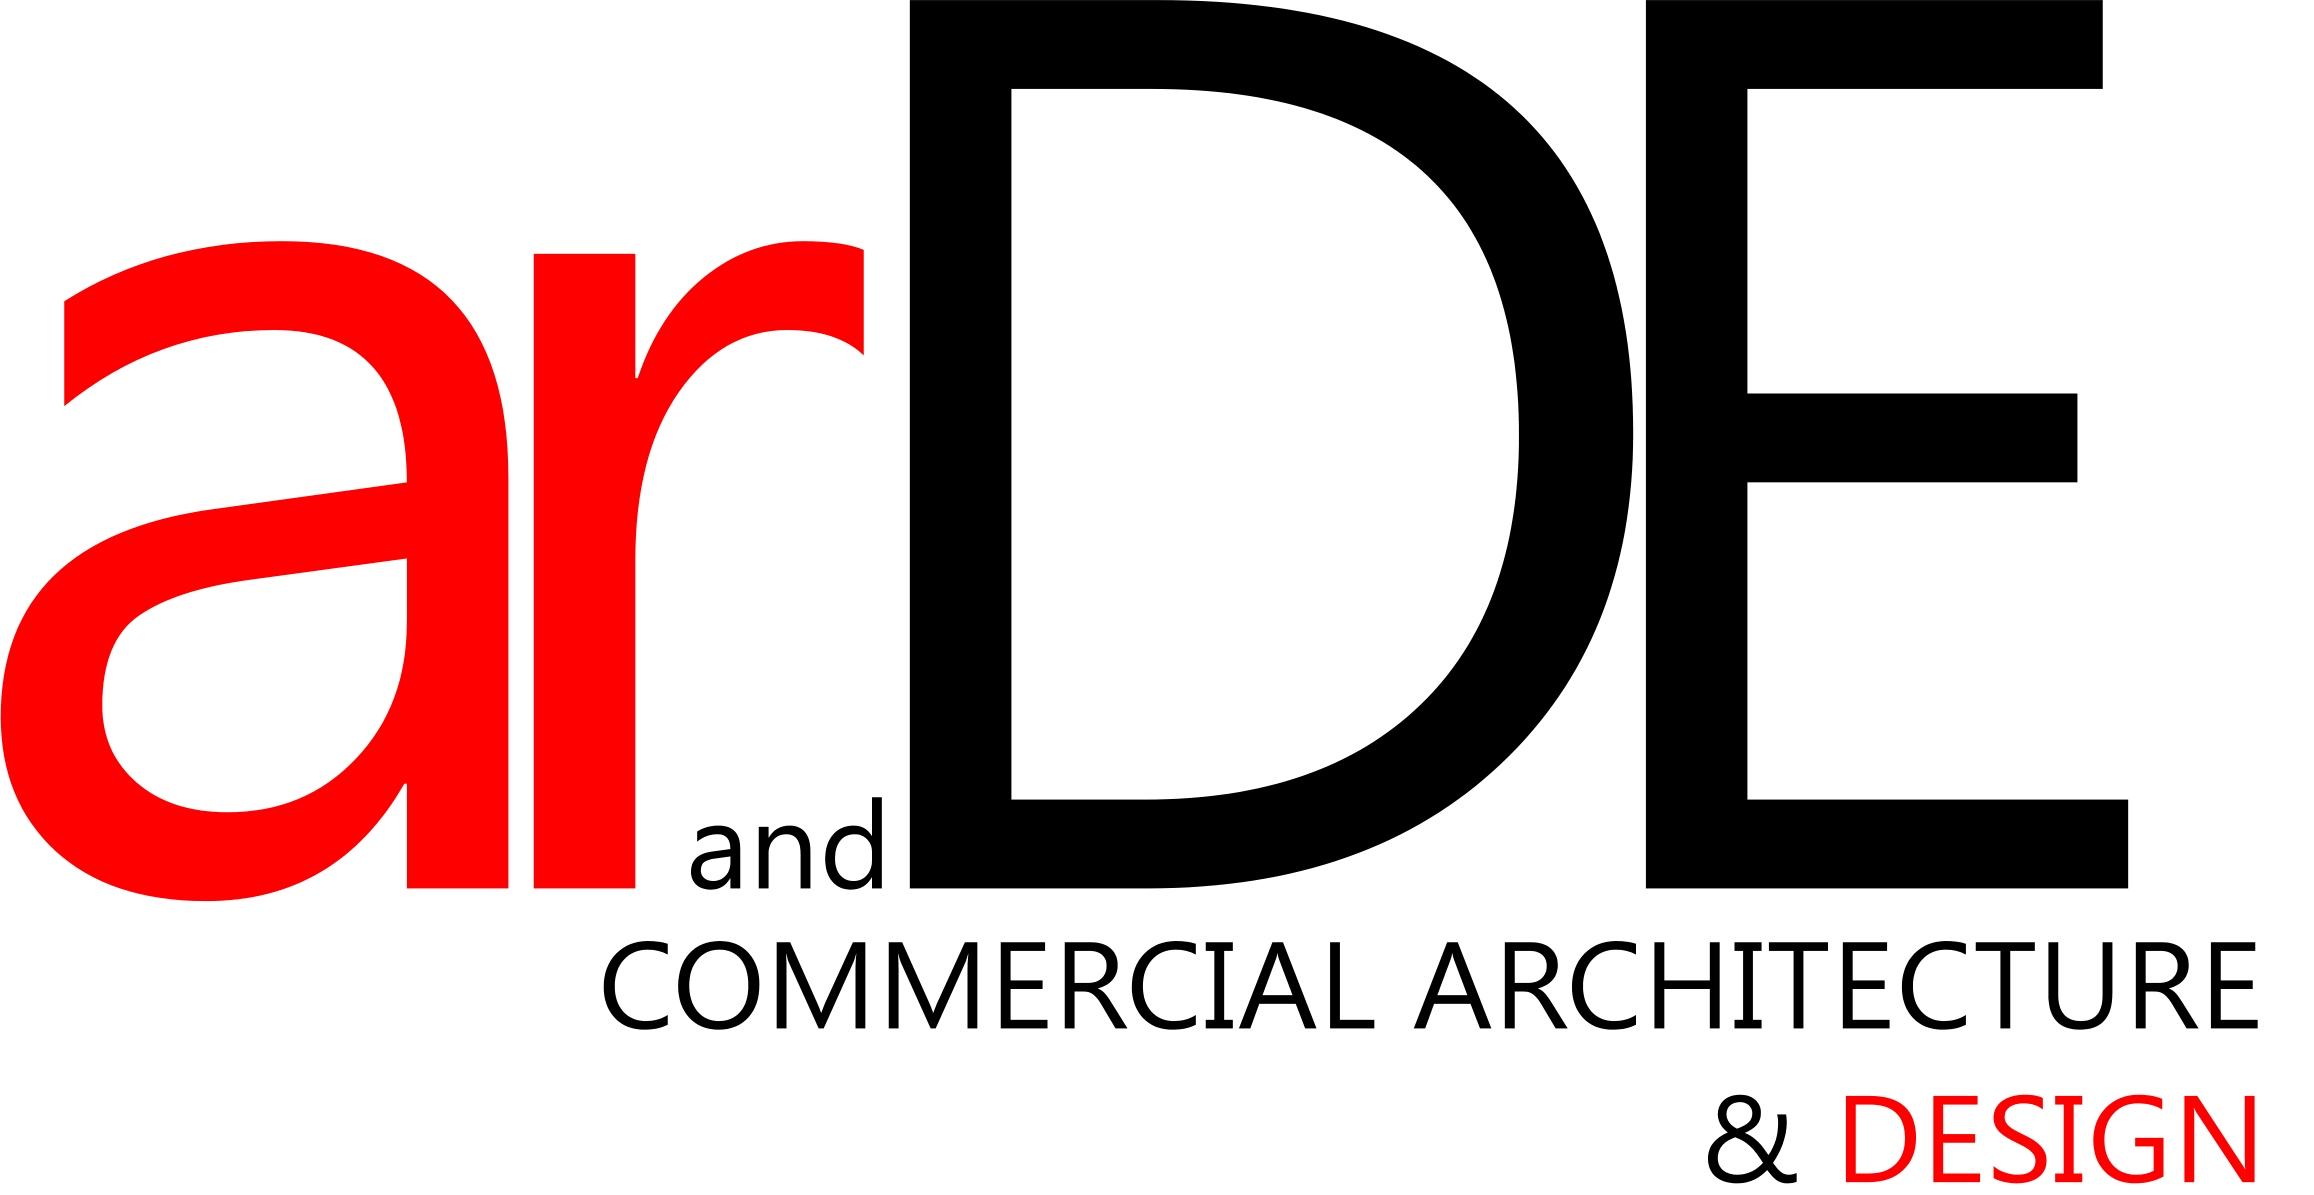 Comercial Architecture And Design